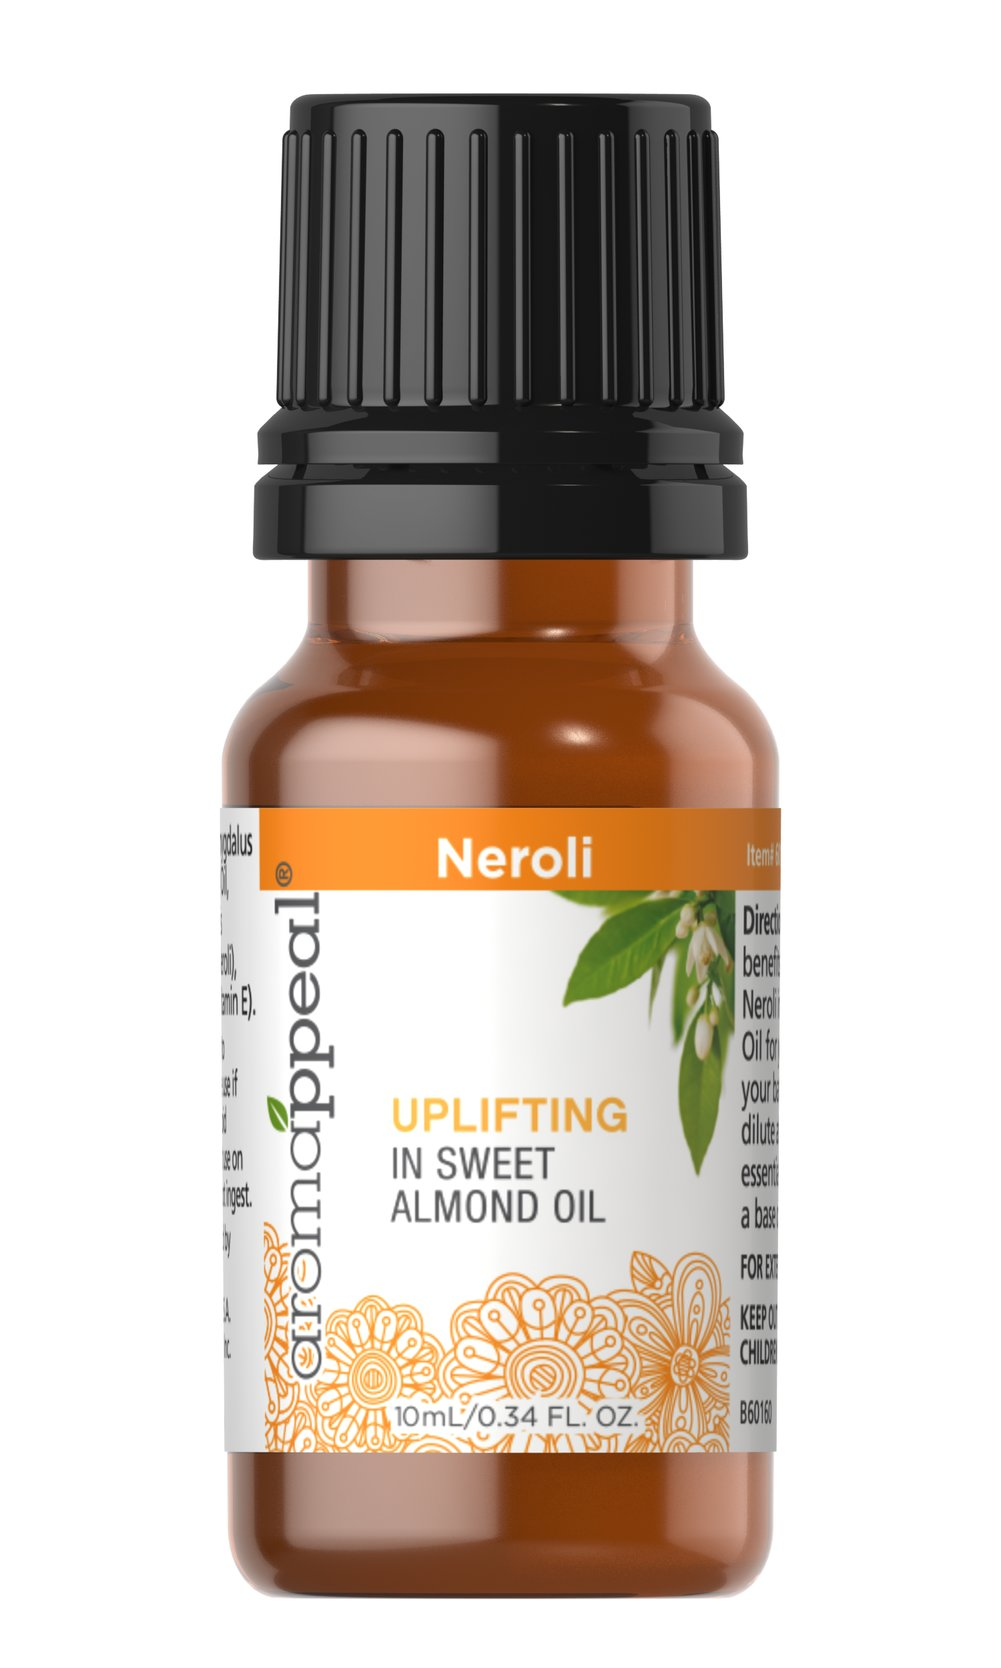 Neroli Essential Oil Blend Invite genuine serenity into your life with the peaceful, balancing influence of Neroli Oil. <p></p>Known for its delicate floral scent, Neroli has been traditionally prized for its contributions nervous system health, as well as its ability to support circulatory and digestive function. 10 ml Oil  $12.99